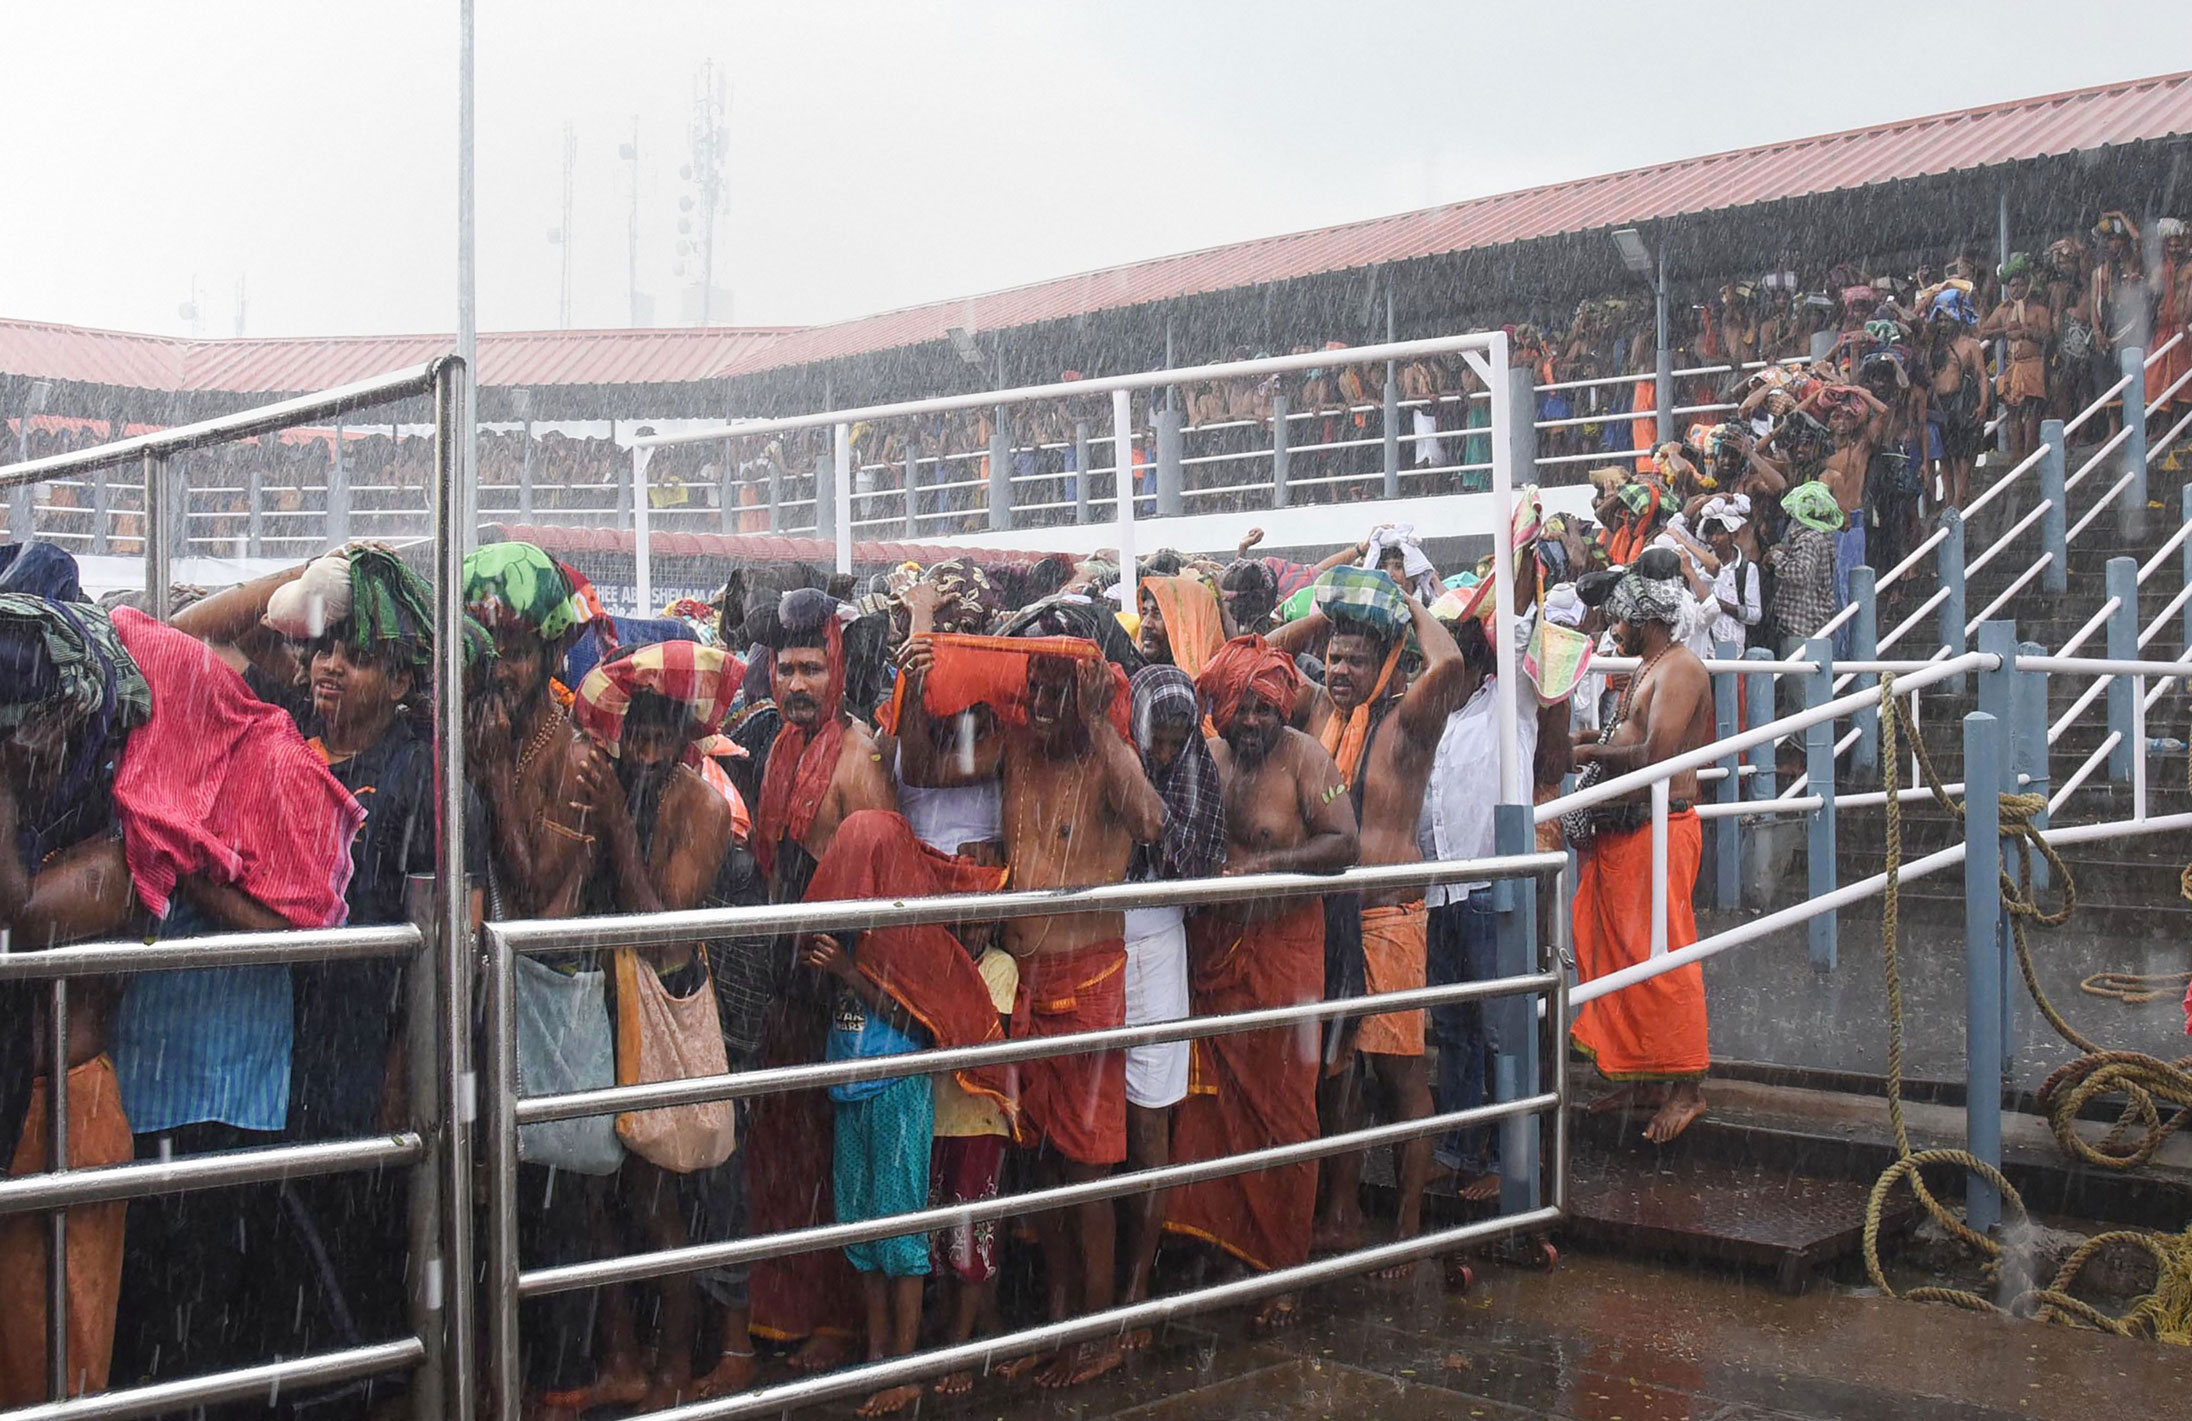 Devotees waiting to offer prayers at the Ayyappa temple in Sabarimala, on November 17, 2019.